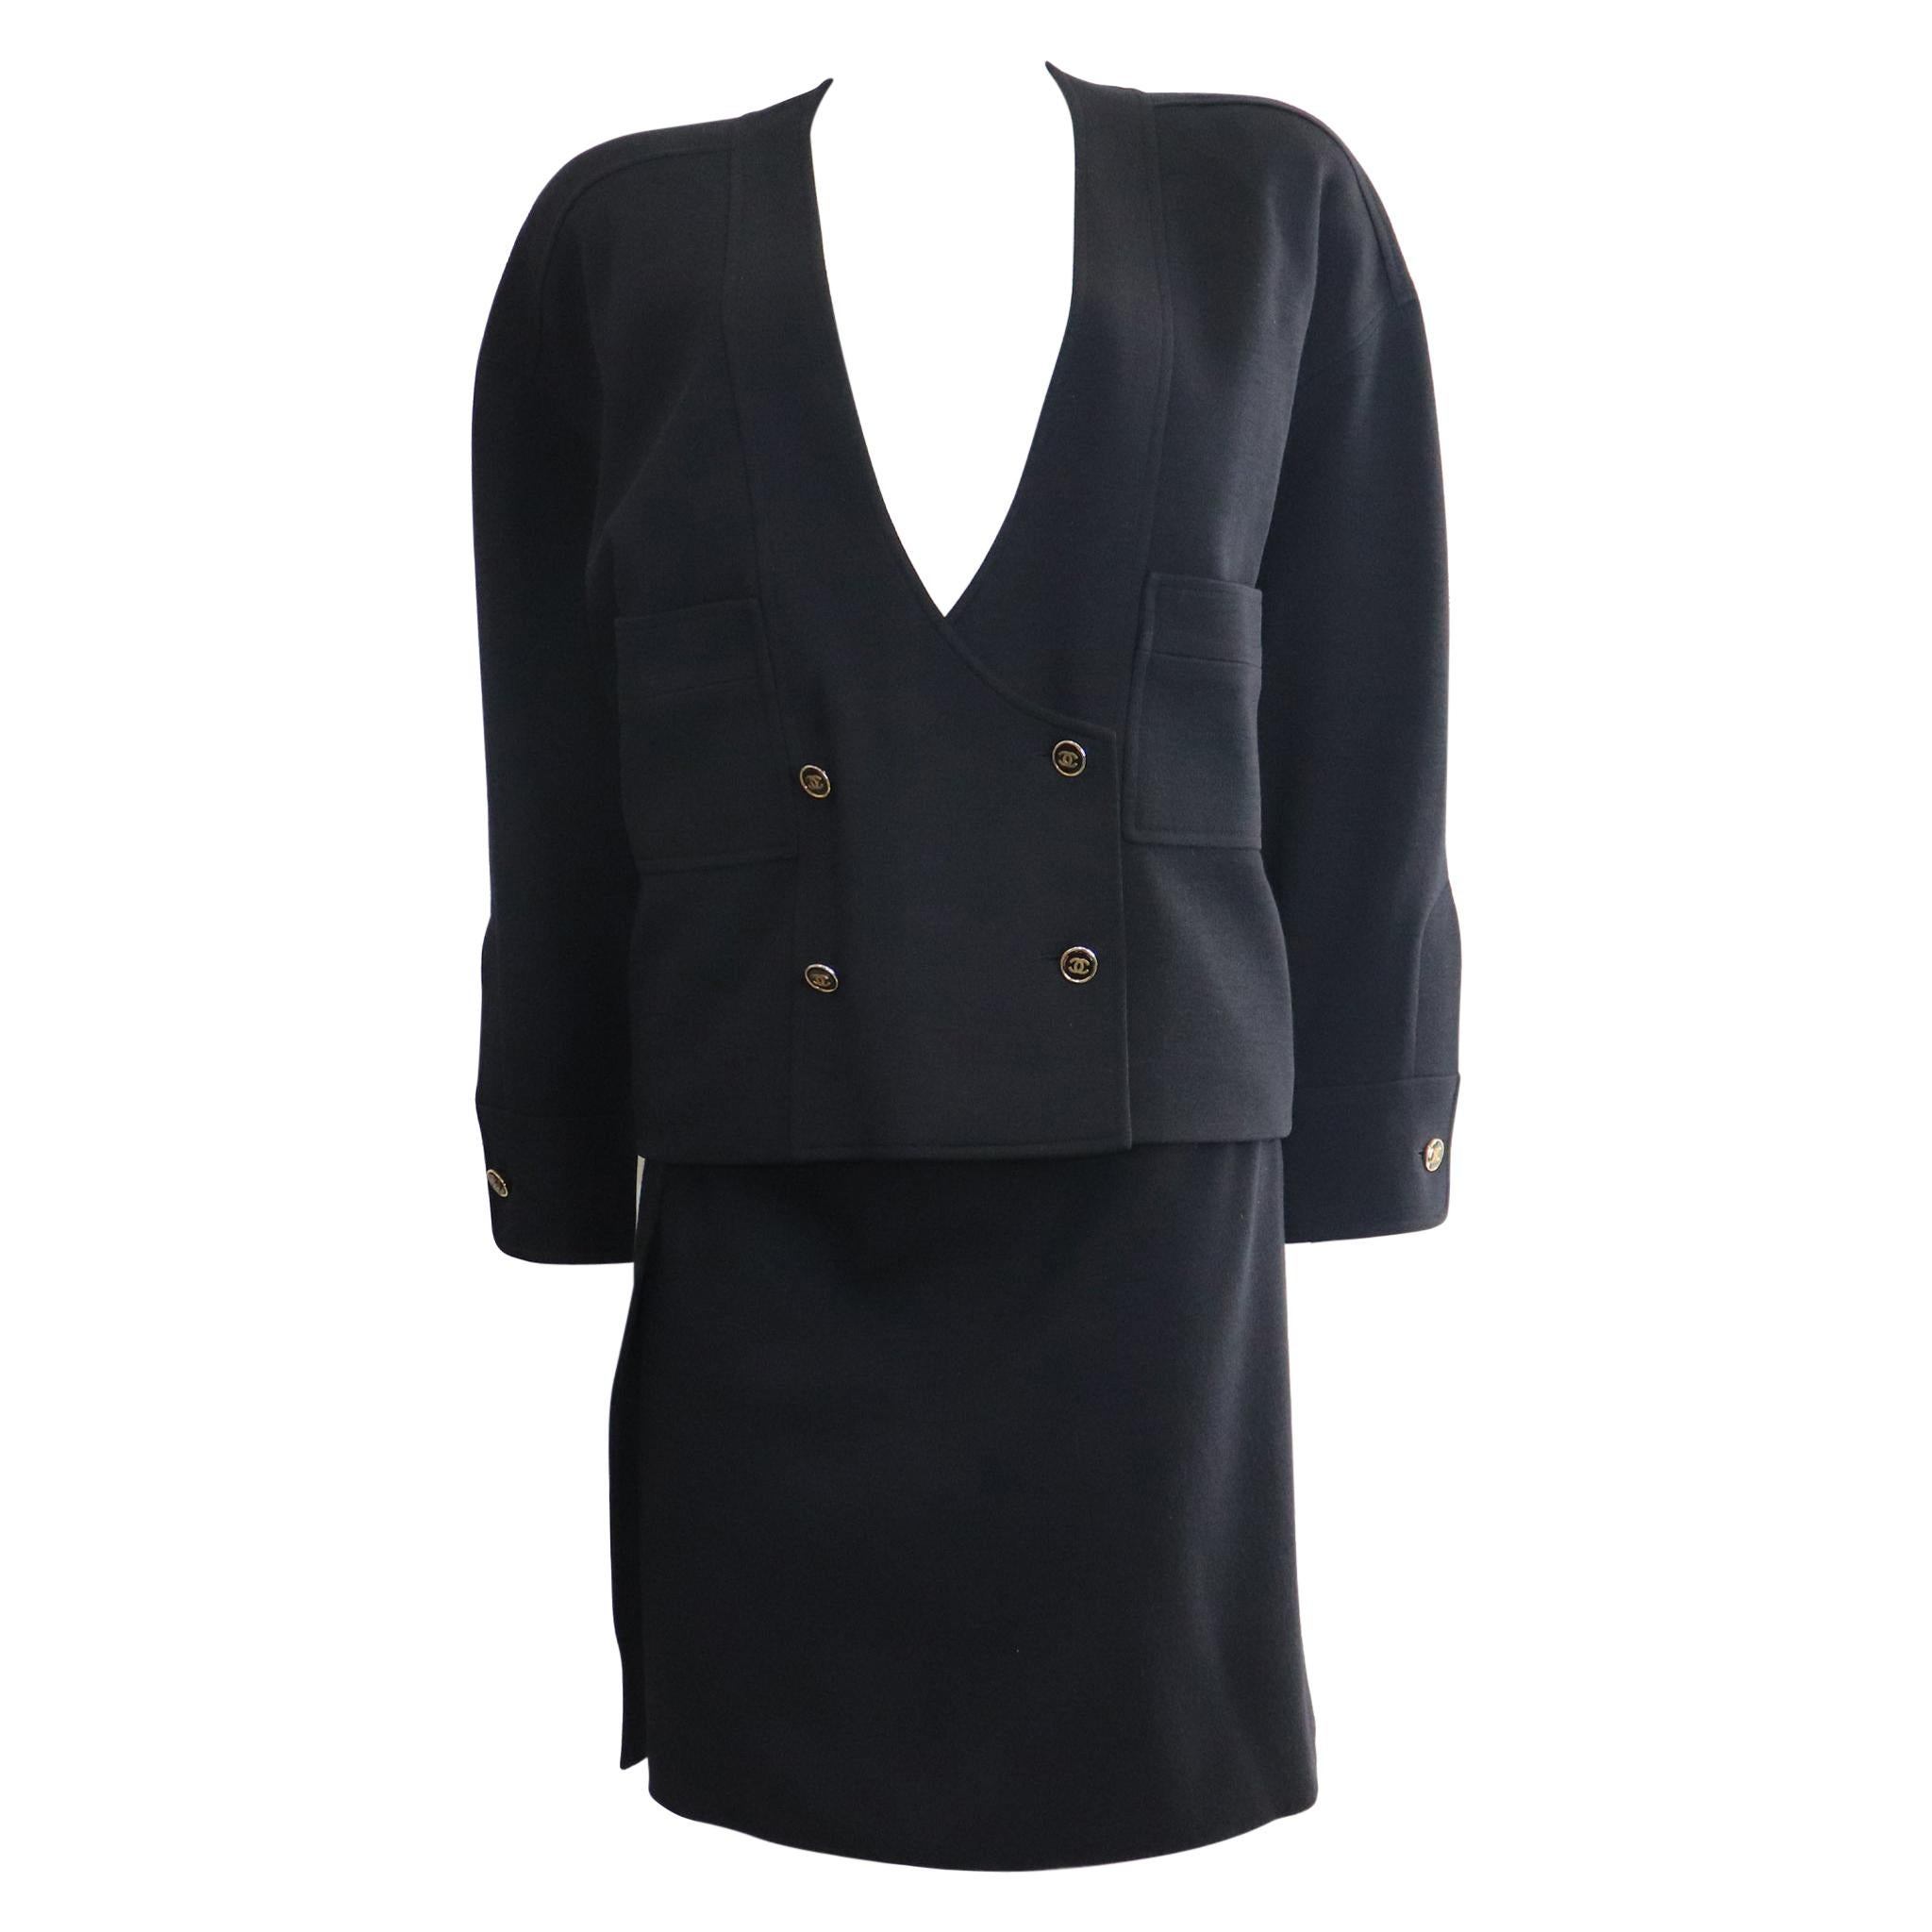 Chanel Navy Blue Double Knit Jacket & Skirt Set w/ Logo Buttons Circa 1990s